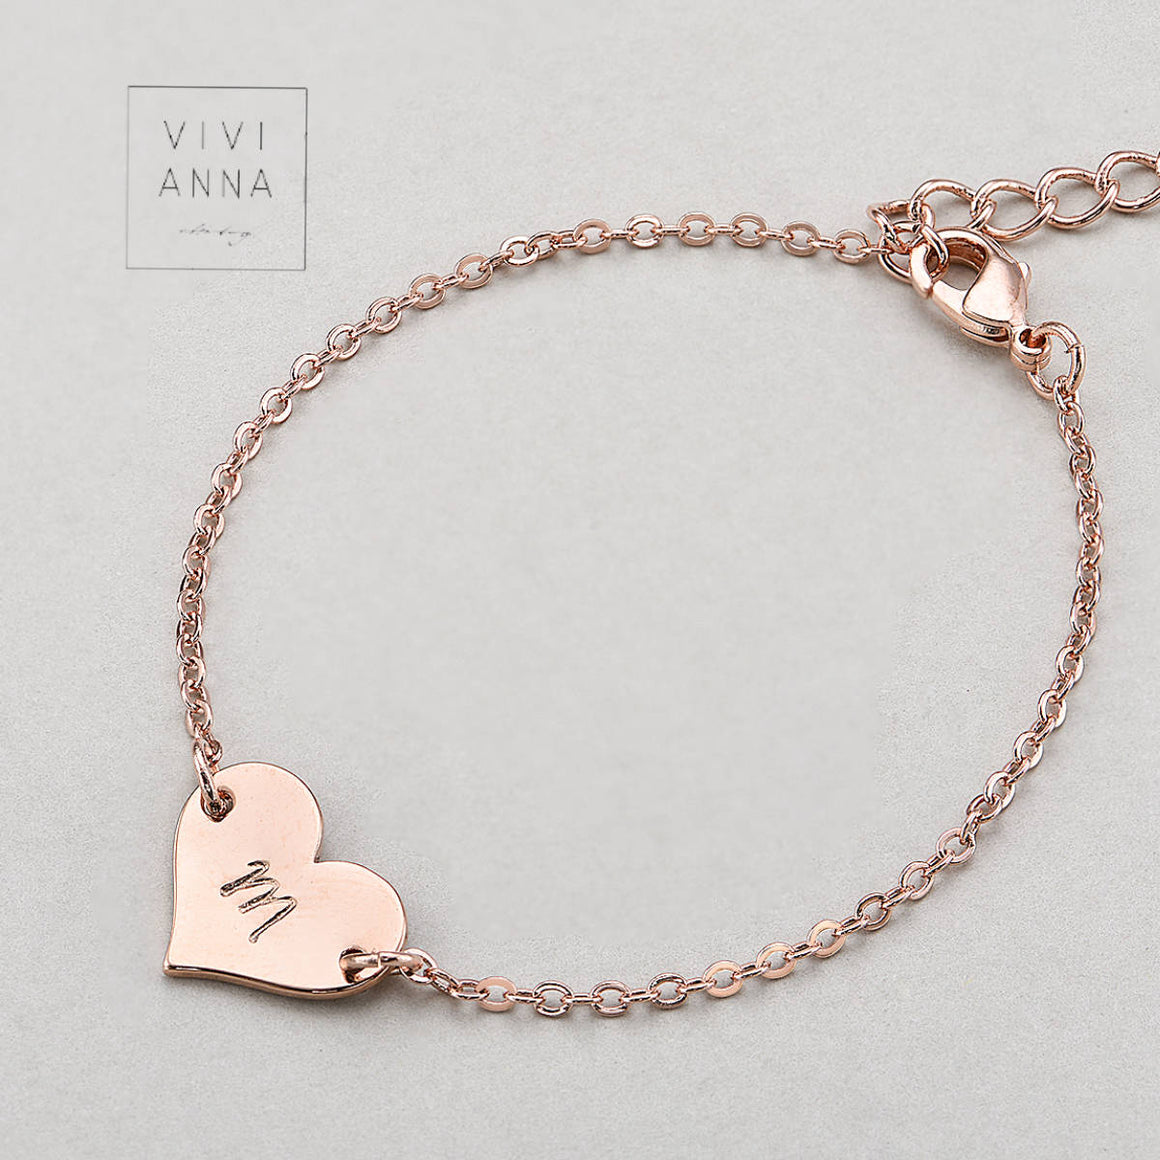 Personalisierte Armband Armkette rose gold PB009